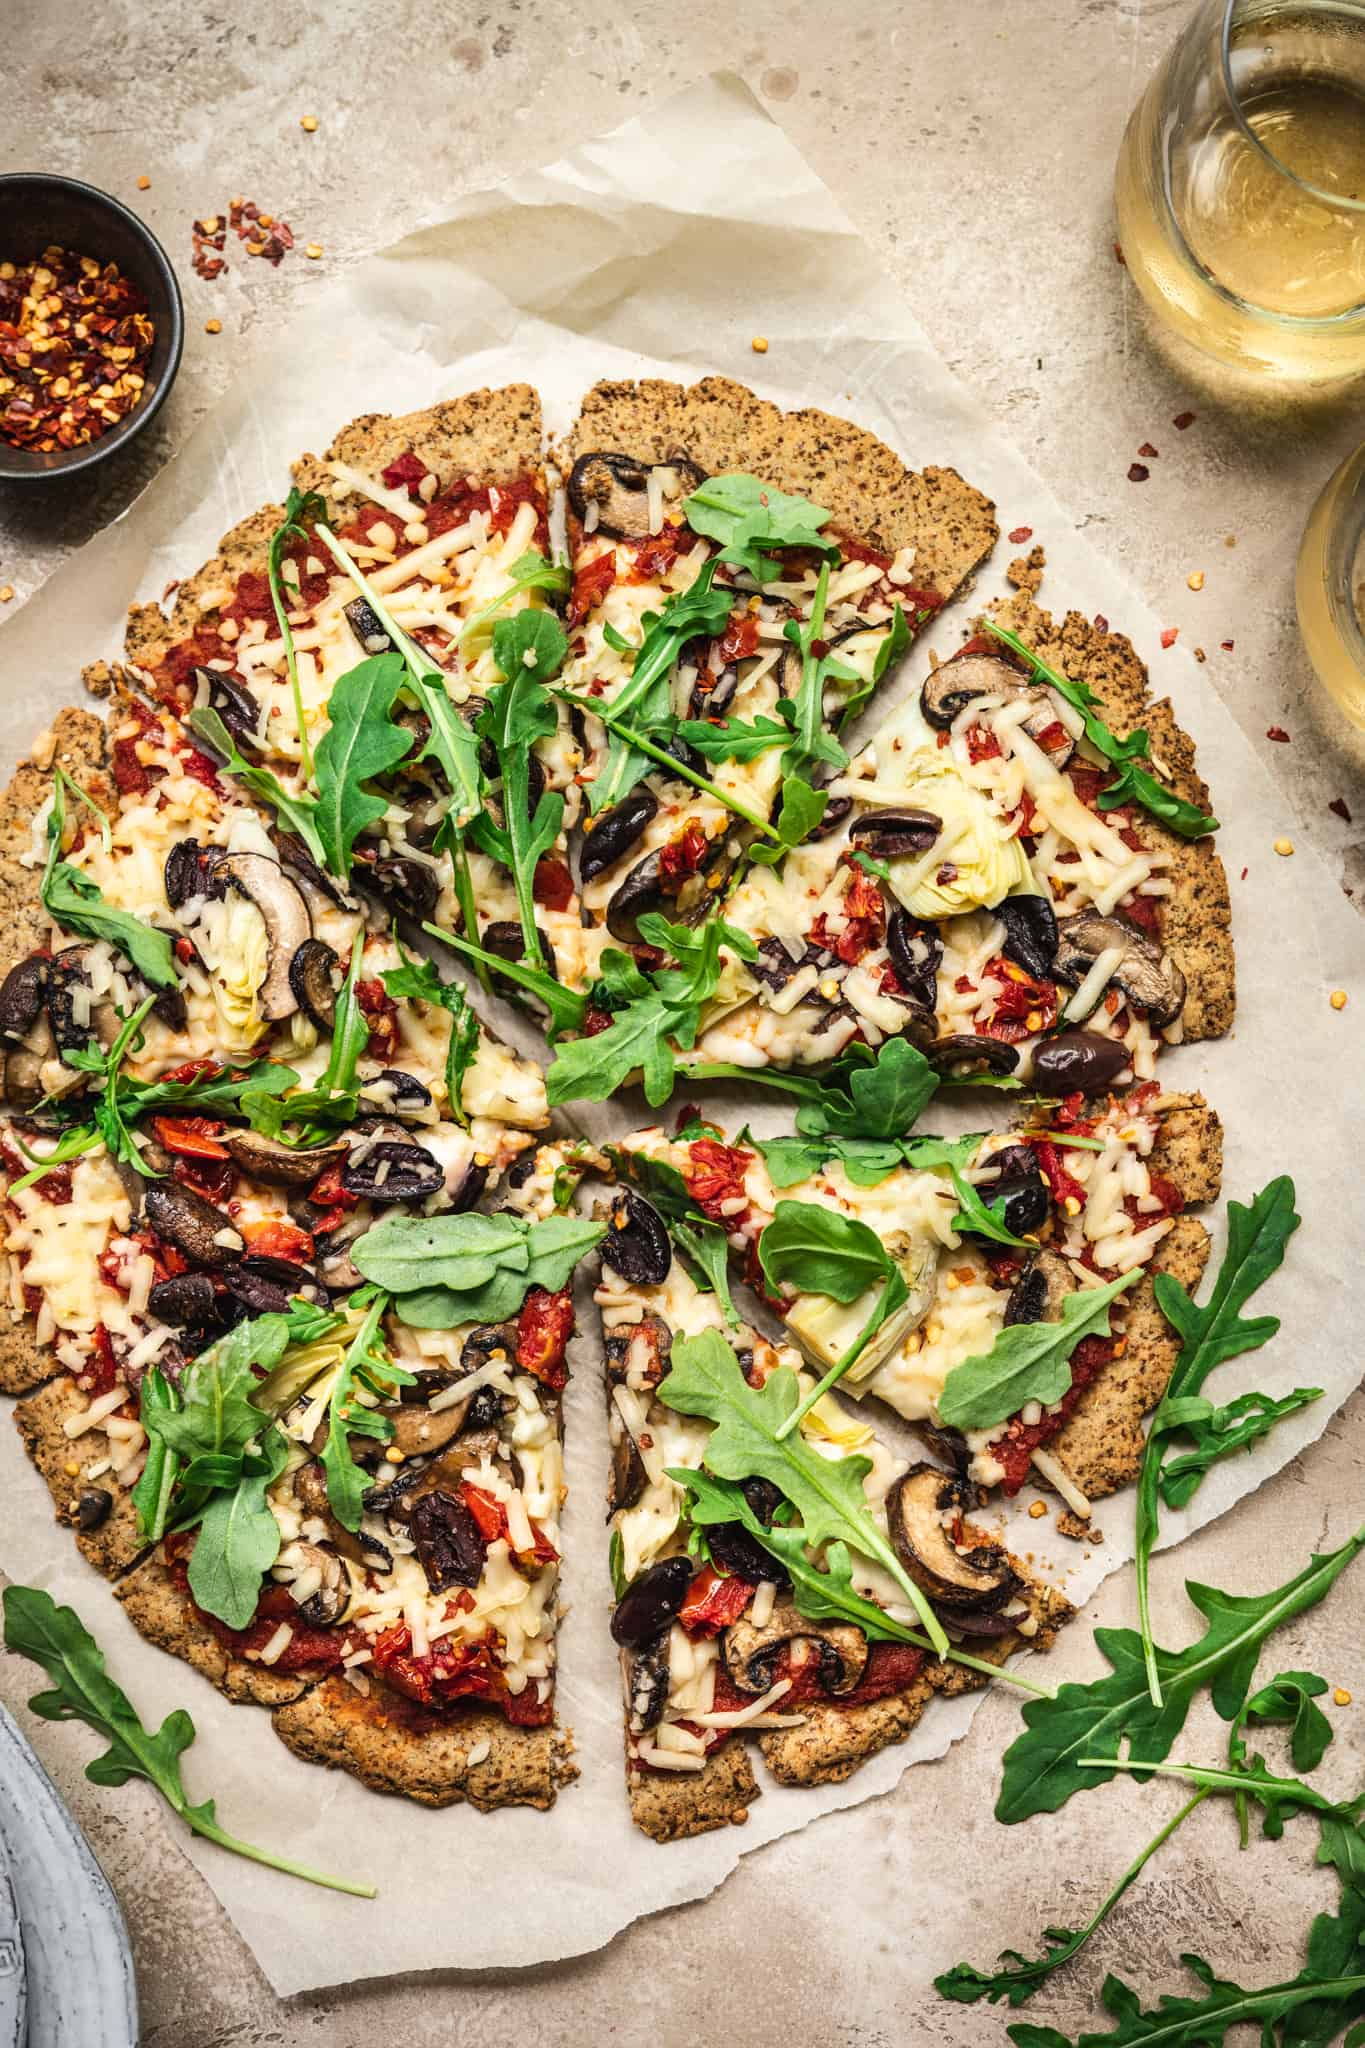 Overhead view of Crispy Cauliflower Vegan Pizza Crust with vegan pizza toppings on rustic background with white wine